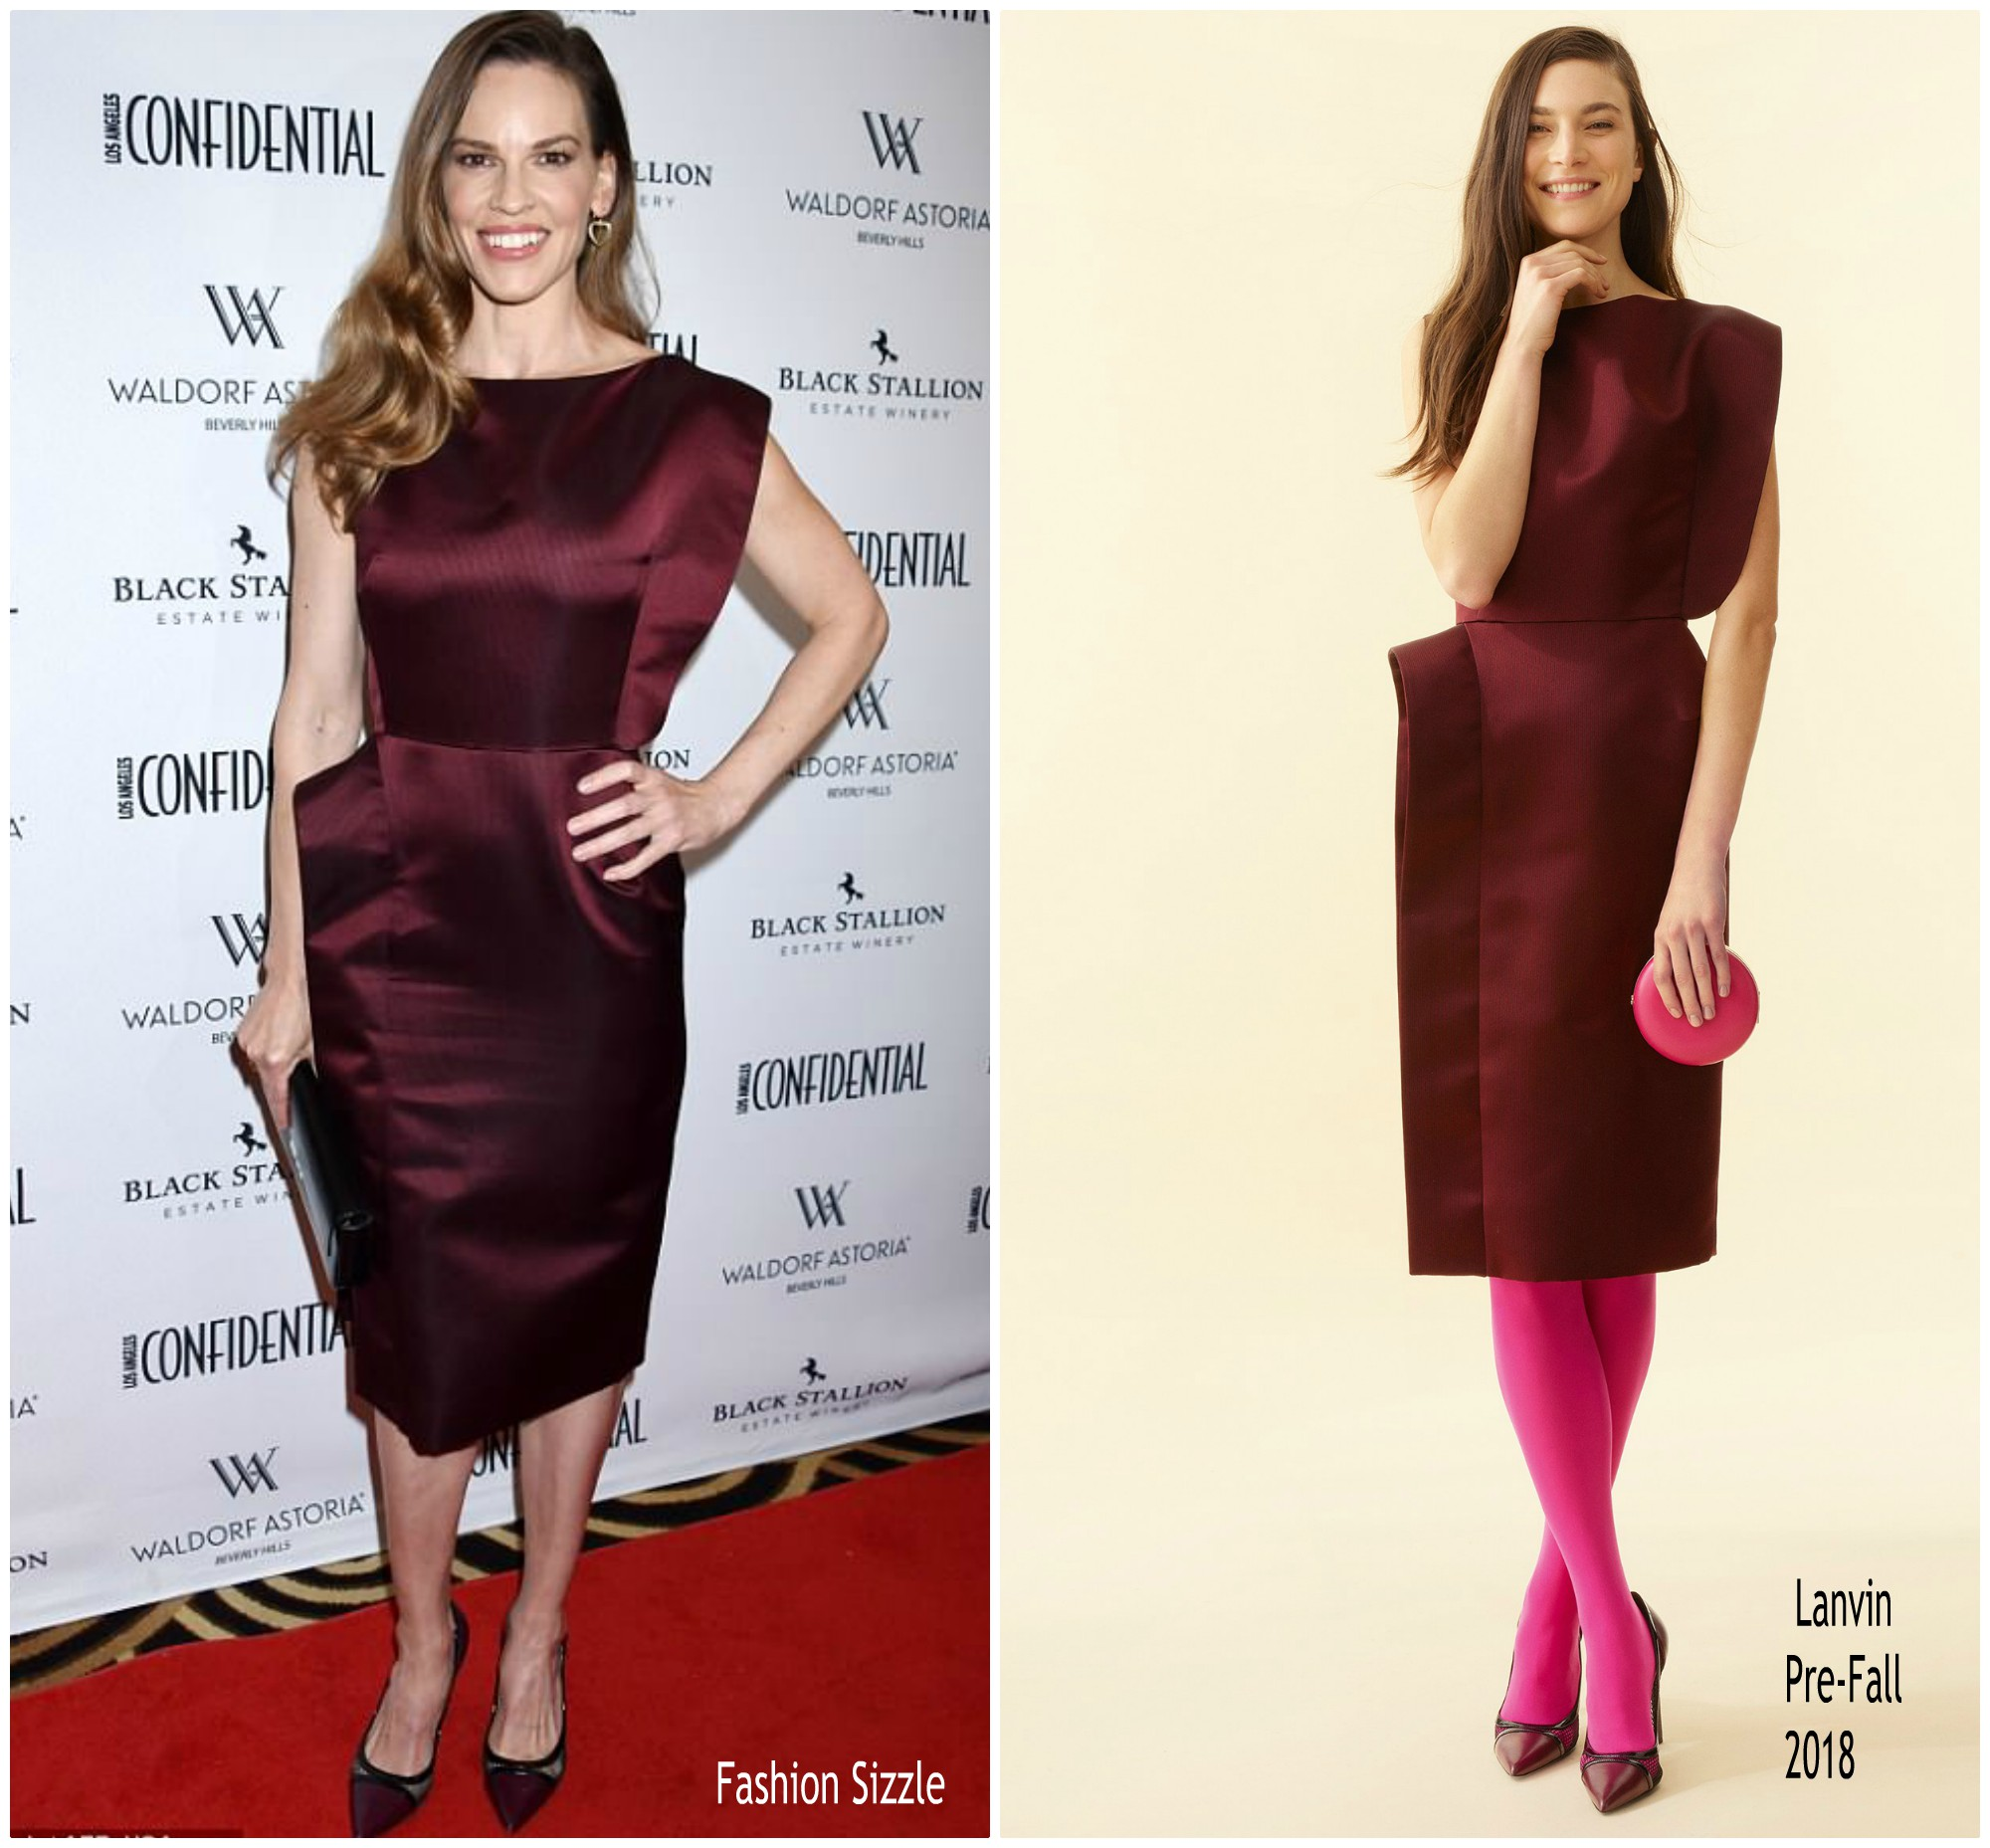 hilary-swank-in-lanvin-los-angeles-confidential-party